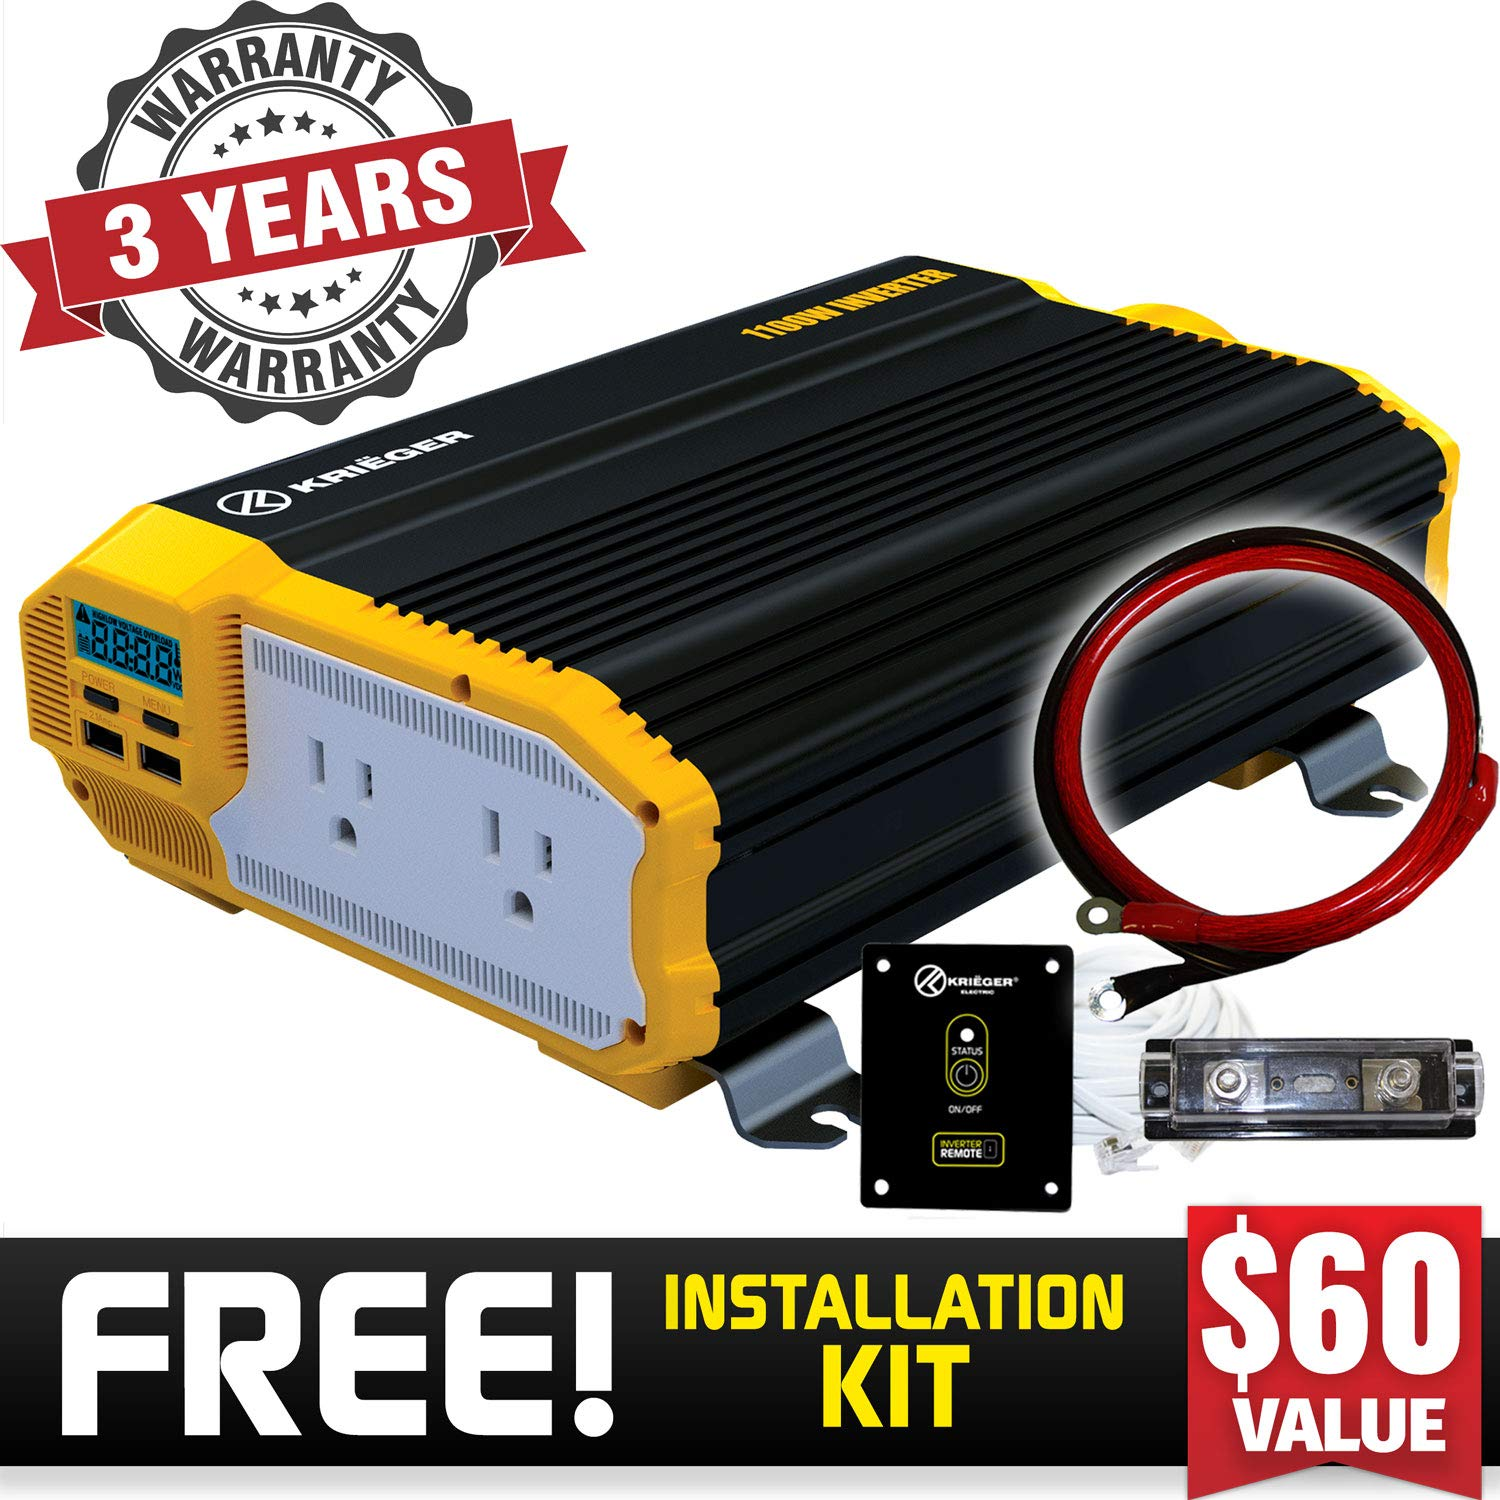 KRIËGER 1100 Watt 12V Power Inverter